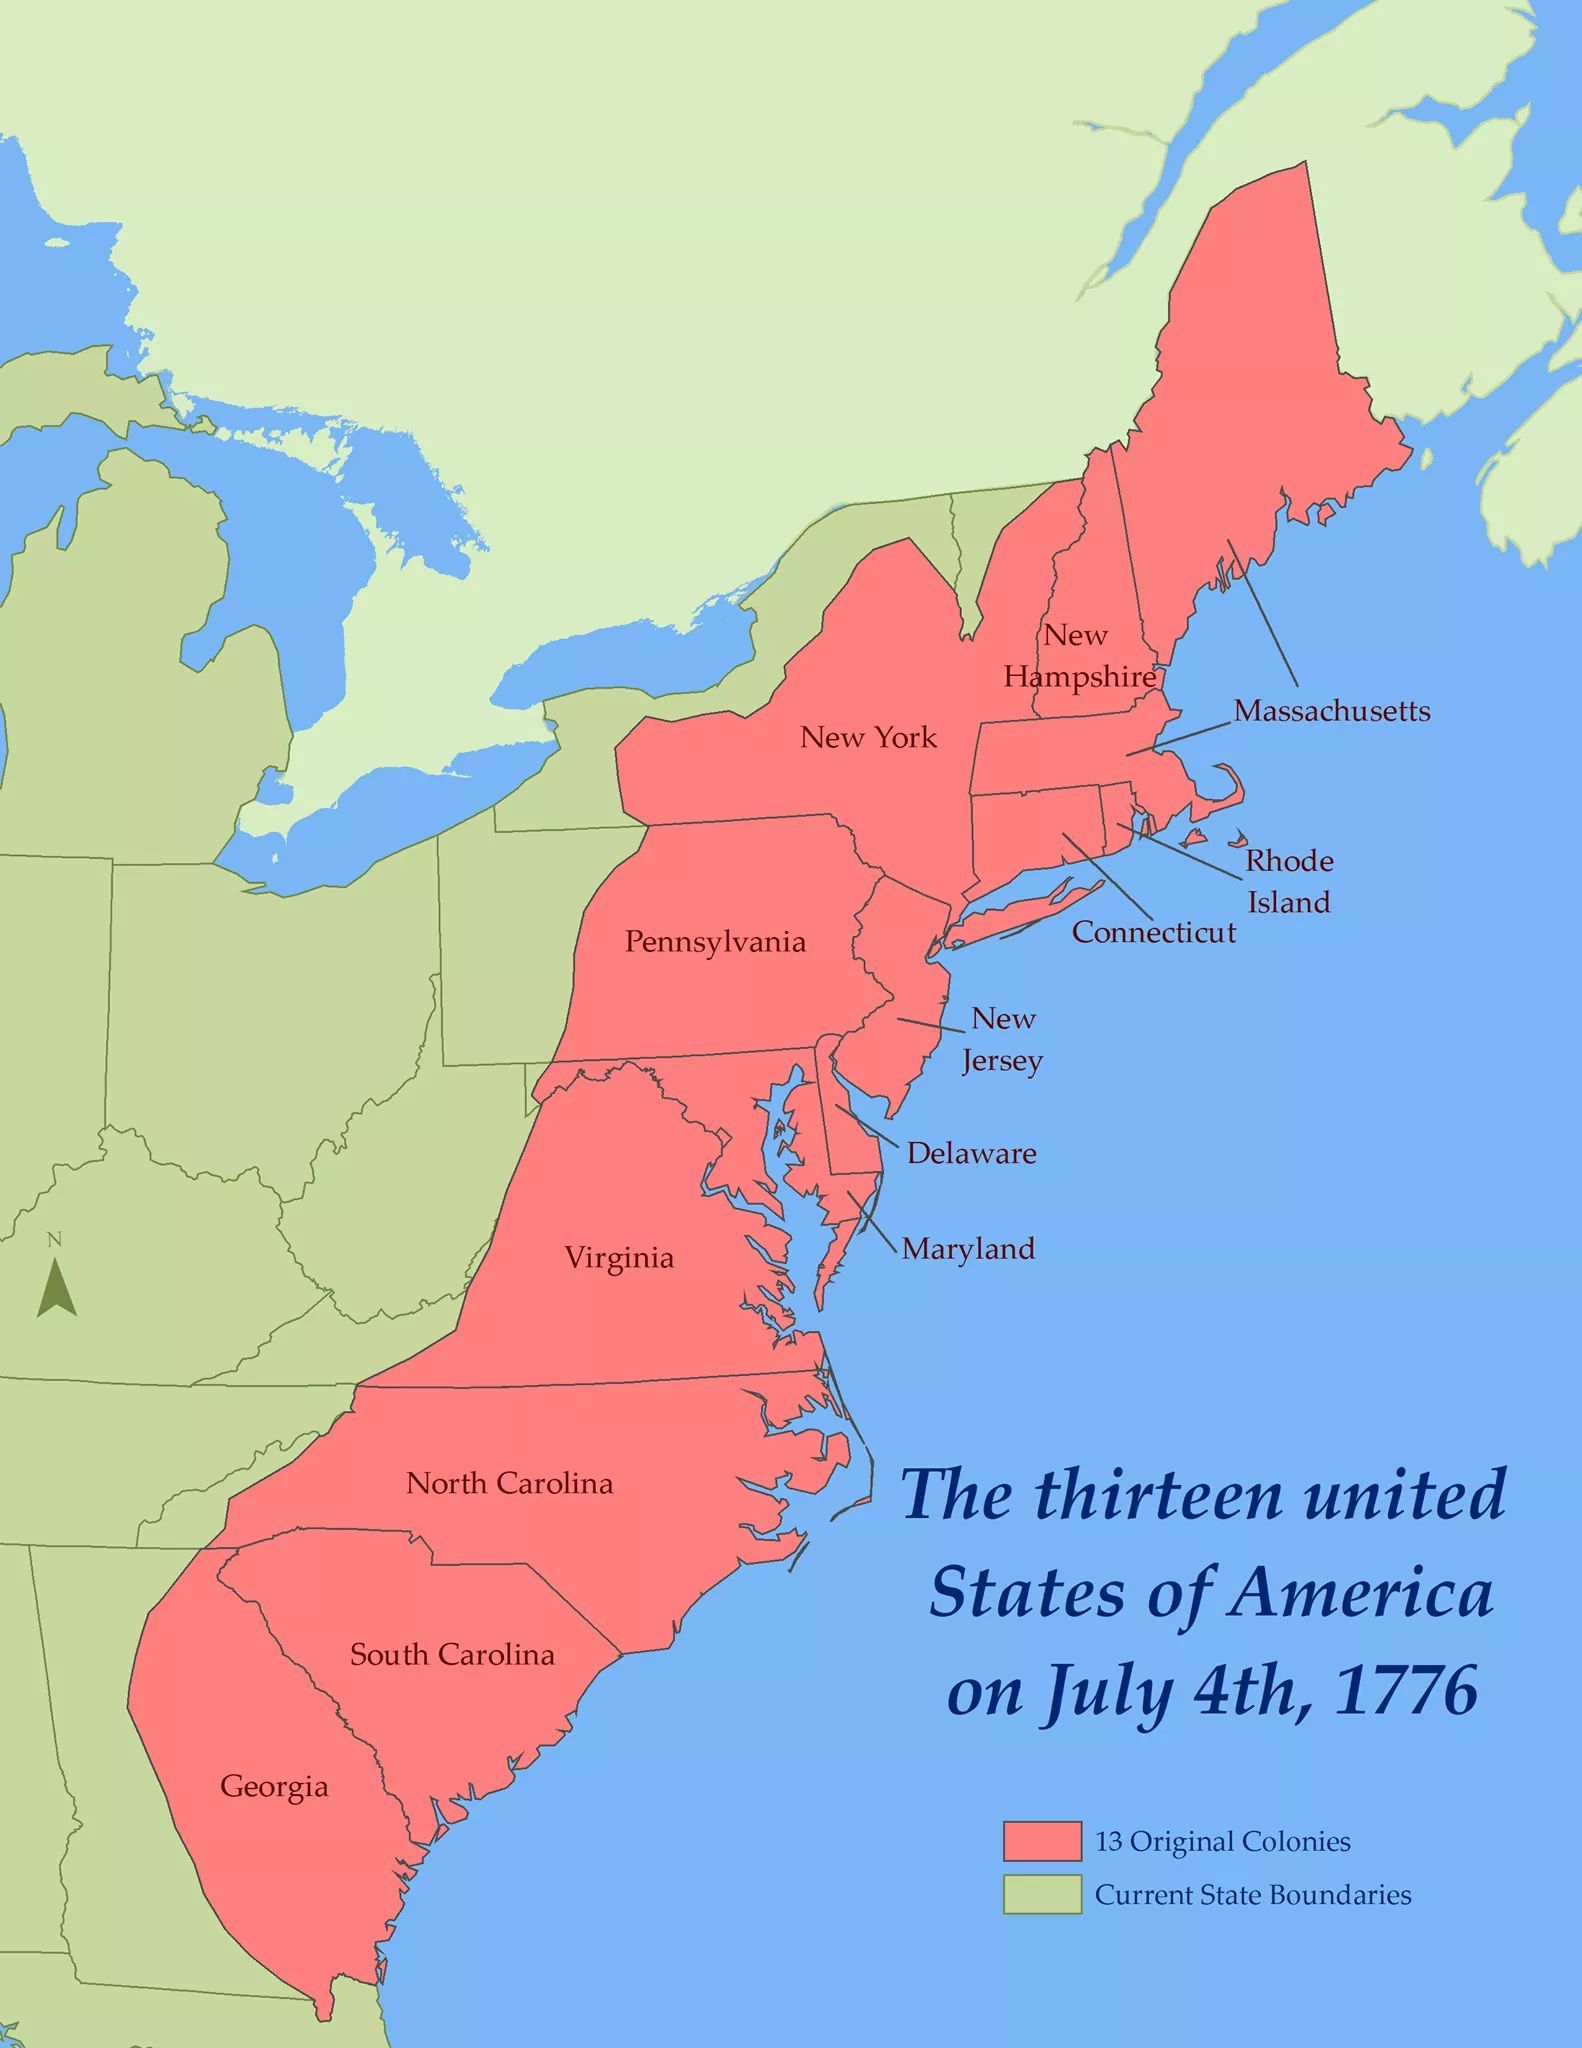 Map Of Us In 1776 Map of the US on July 4th, 1776 #Maps #InterestingMaps